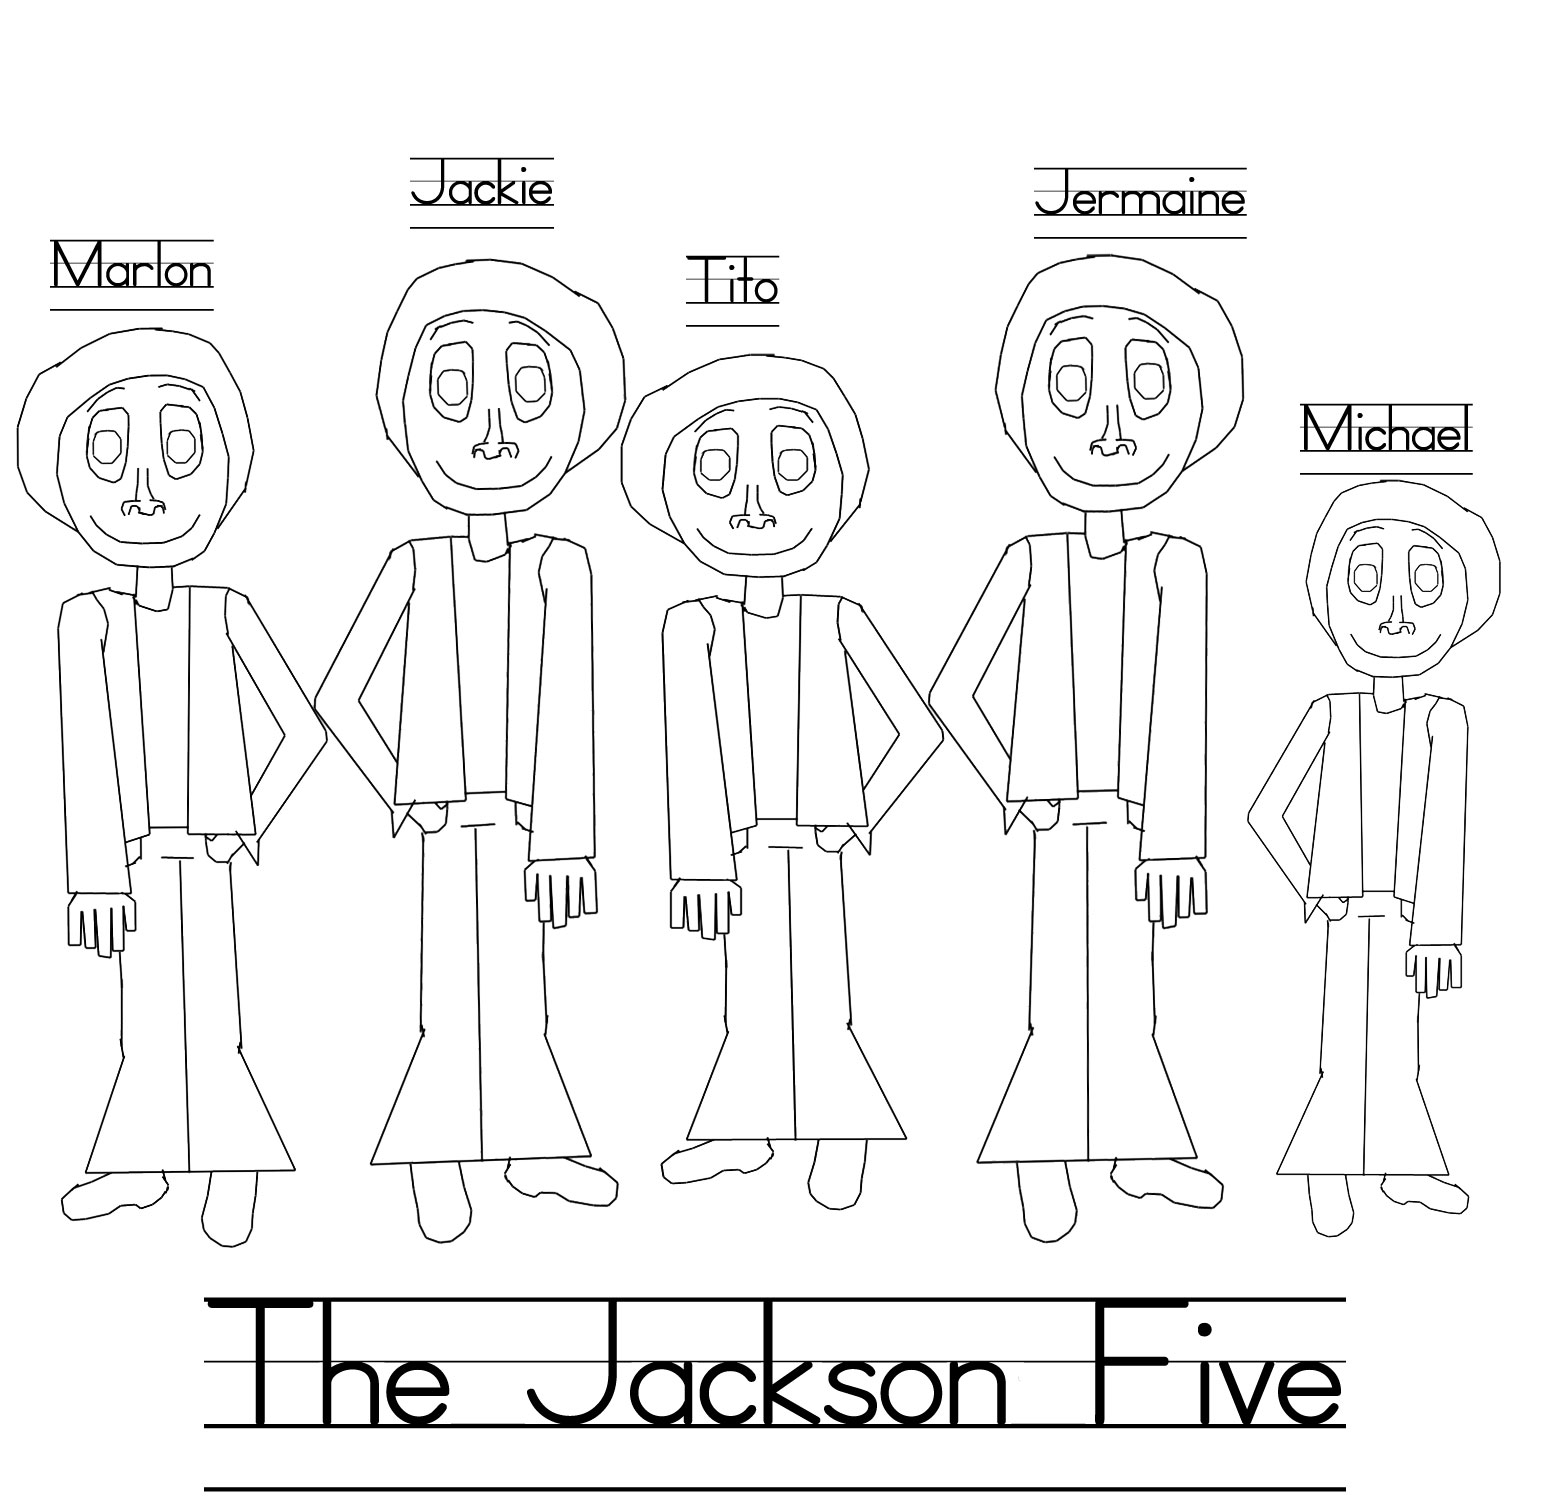 michael name coloring pages - photo#14